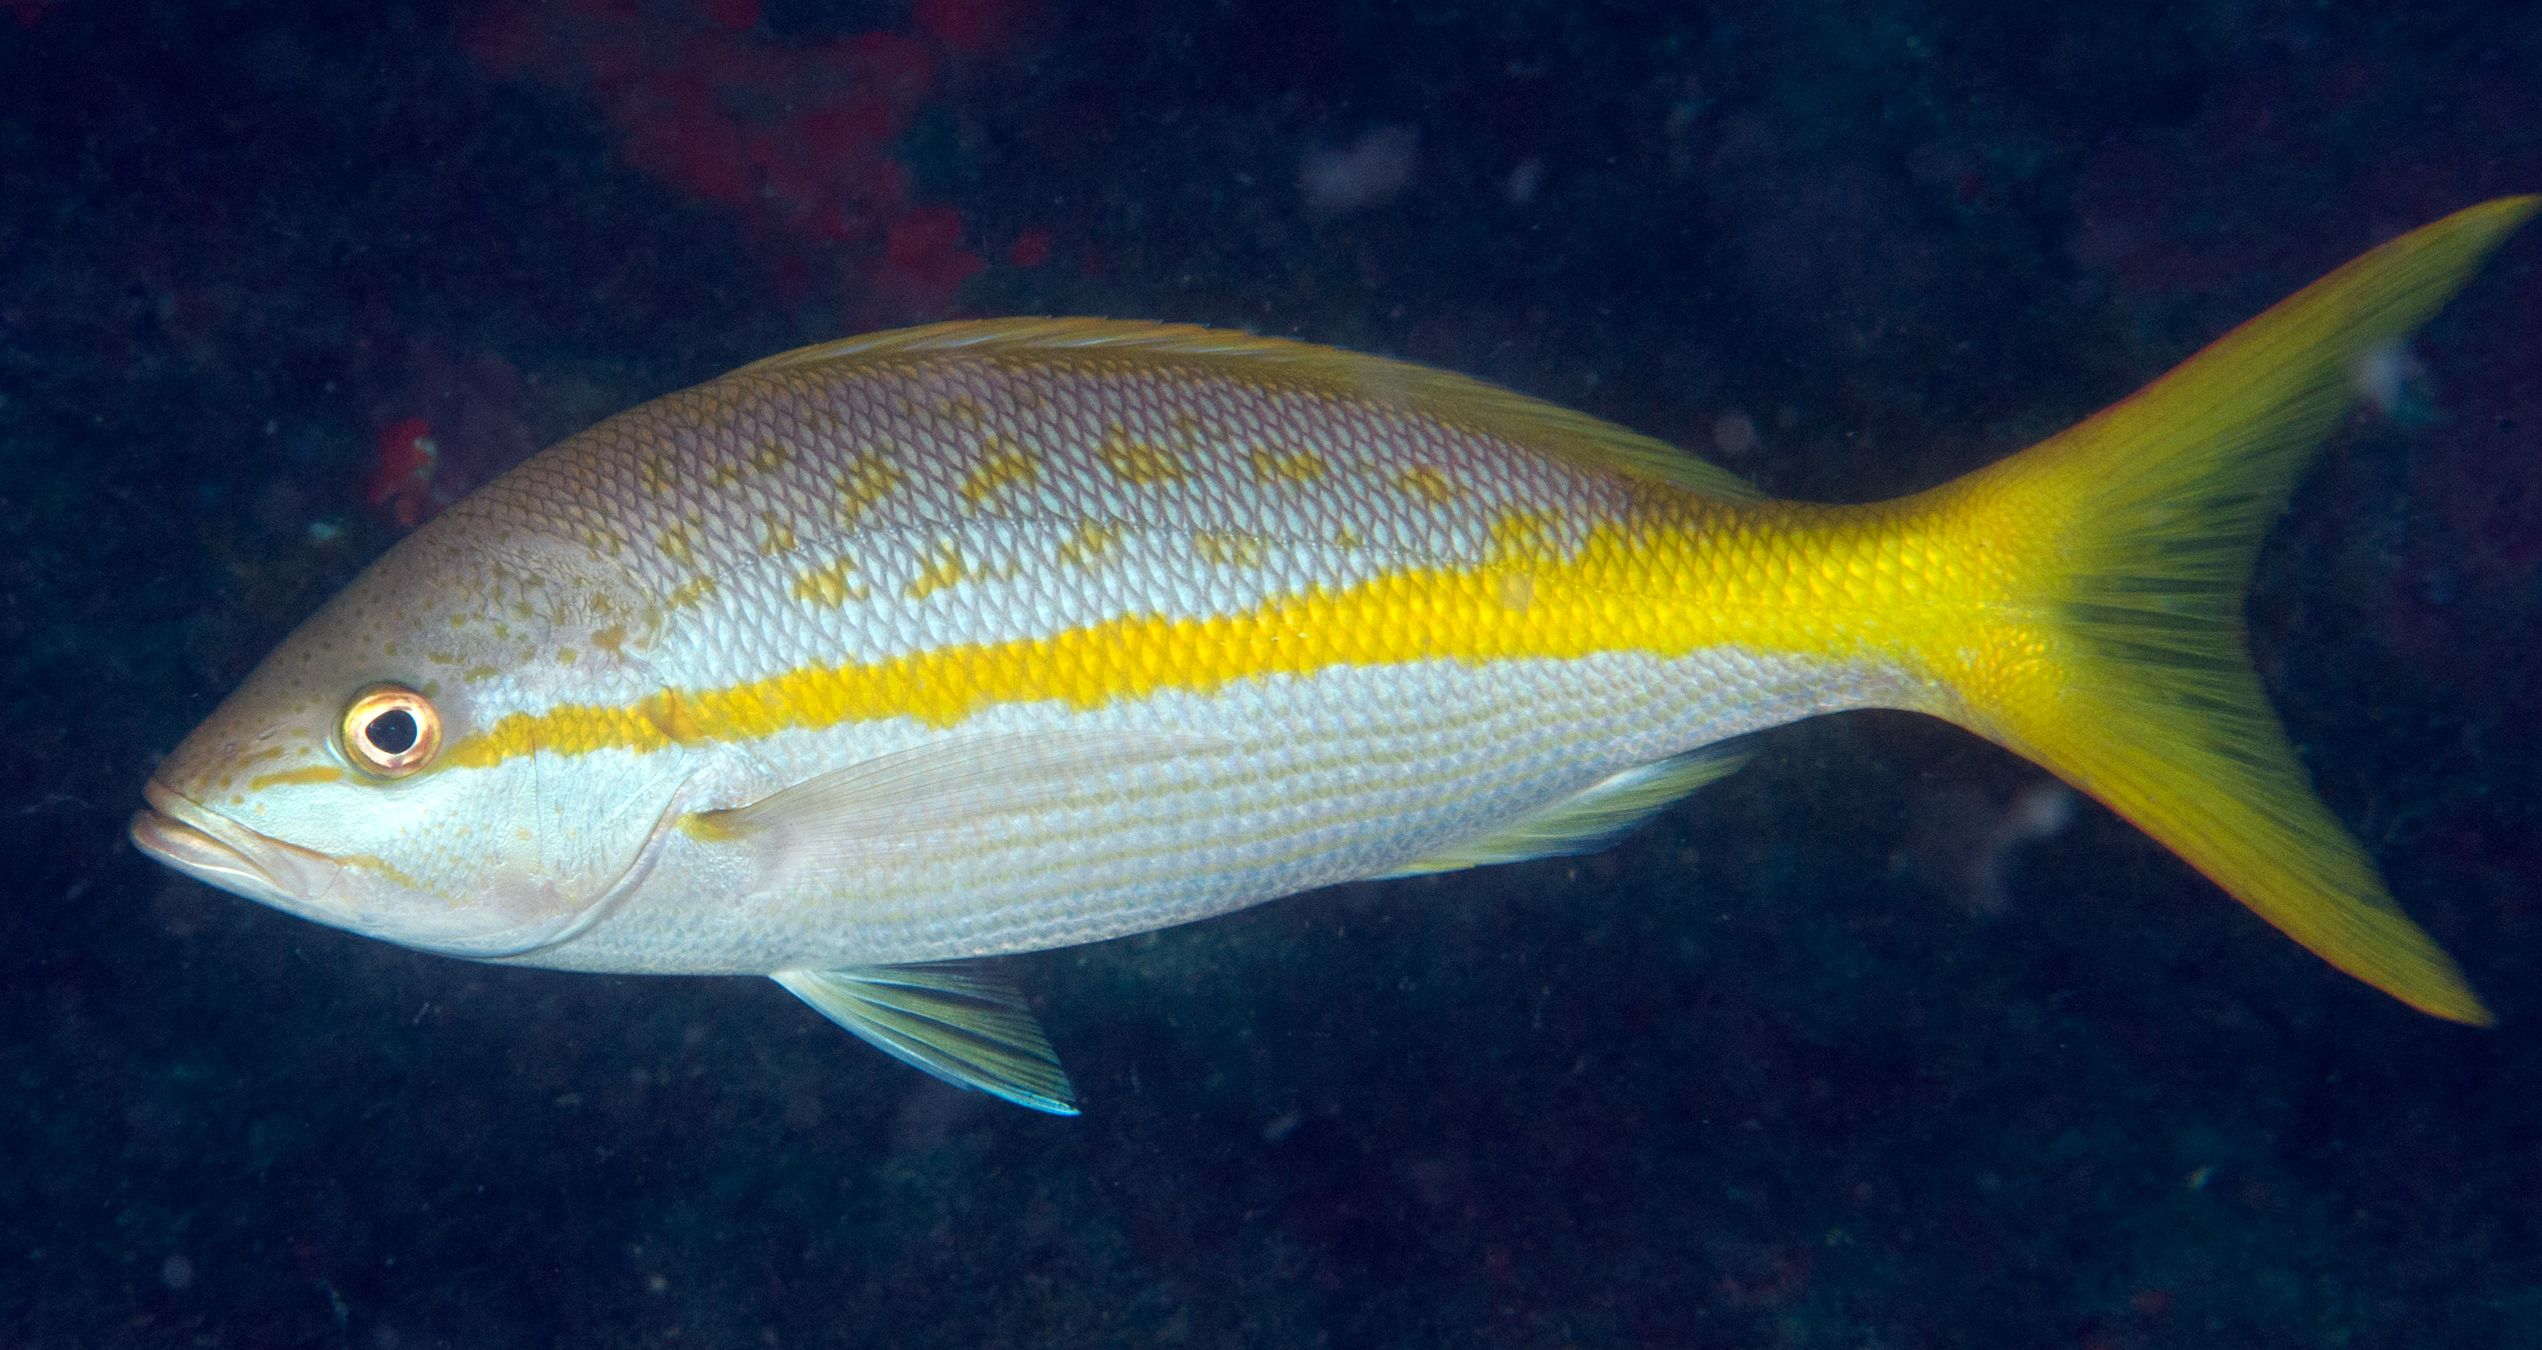 Fishes of flower garden banks national marine sanctuary for Yellow tail fish